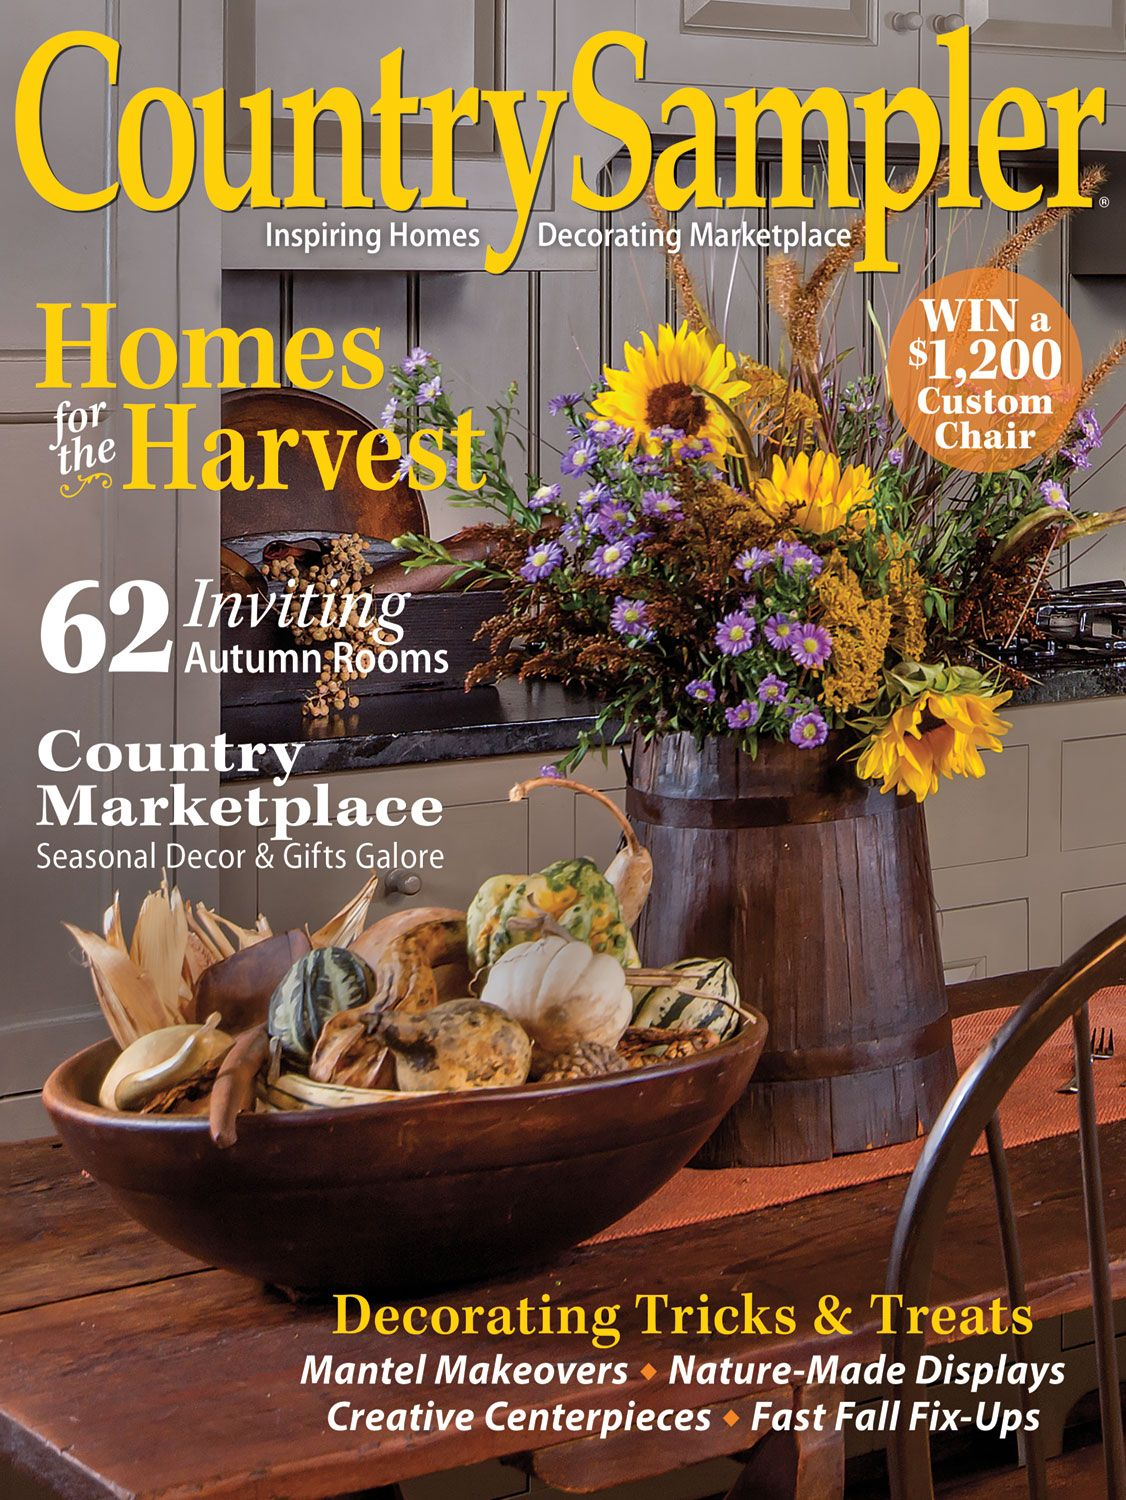 September Decorating Ideas Delectable Our September Issue Is Chockfull Of Great Fall Decorating Ideas . Design Inspiration